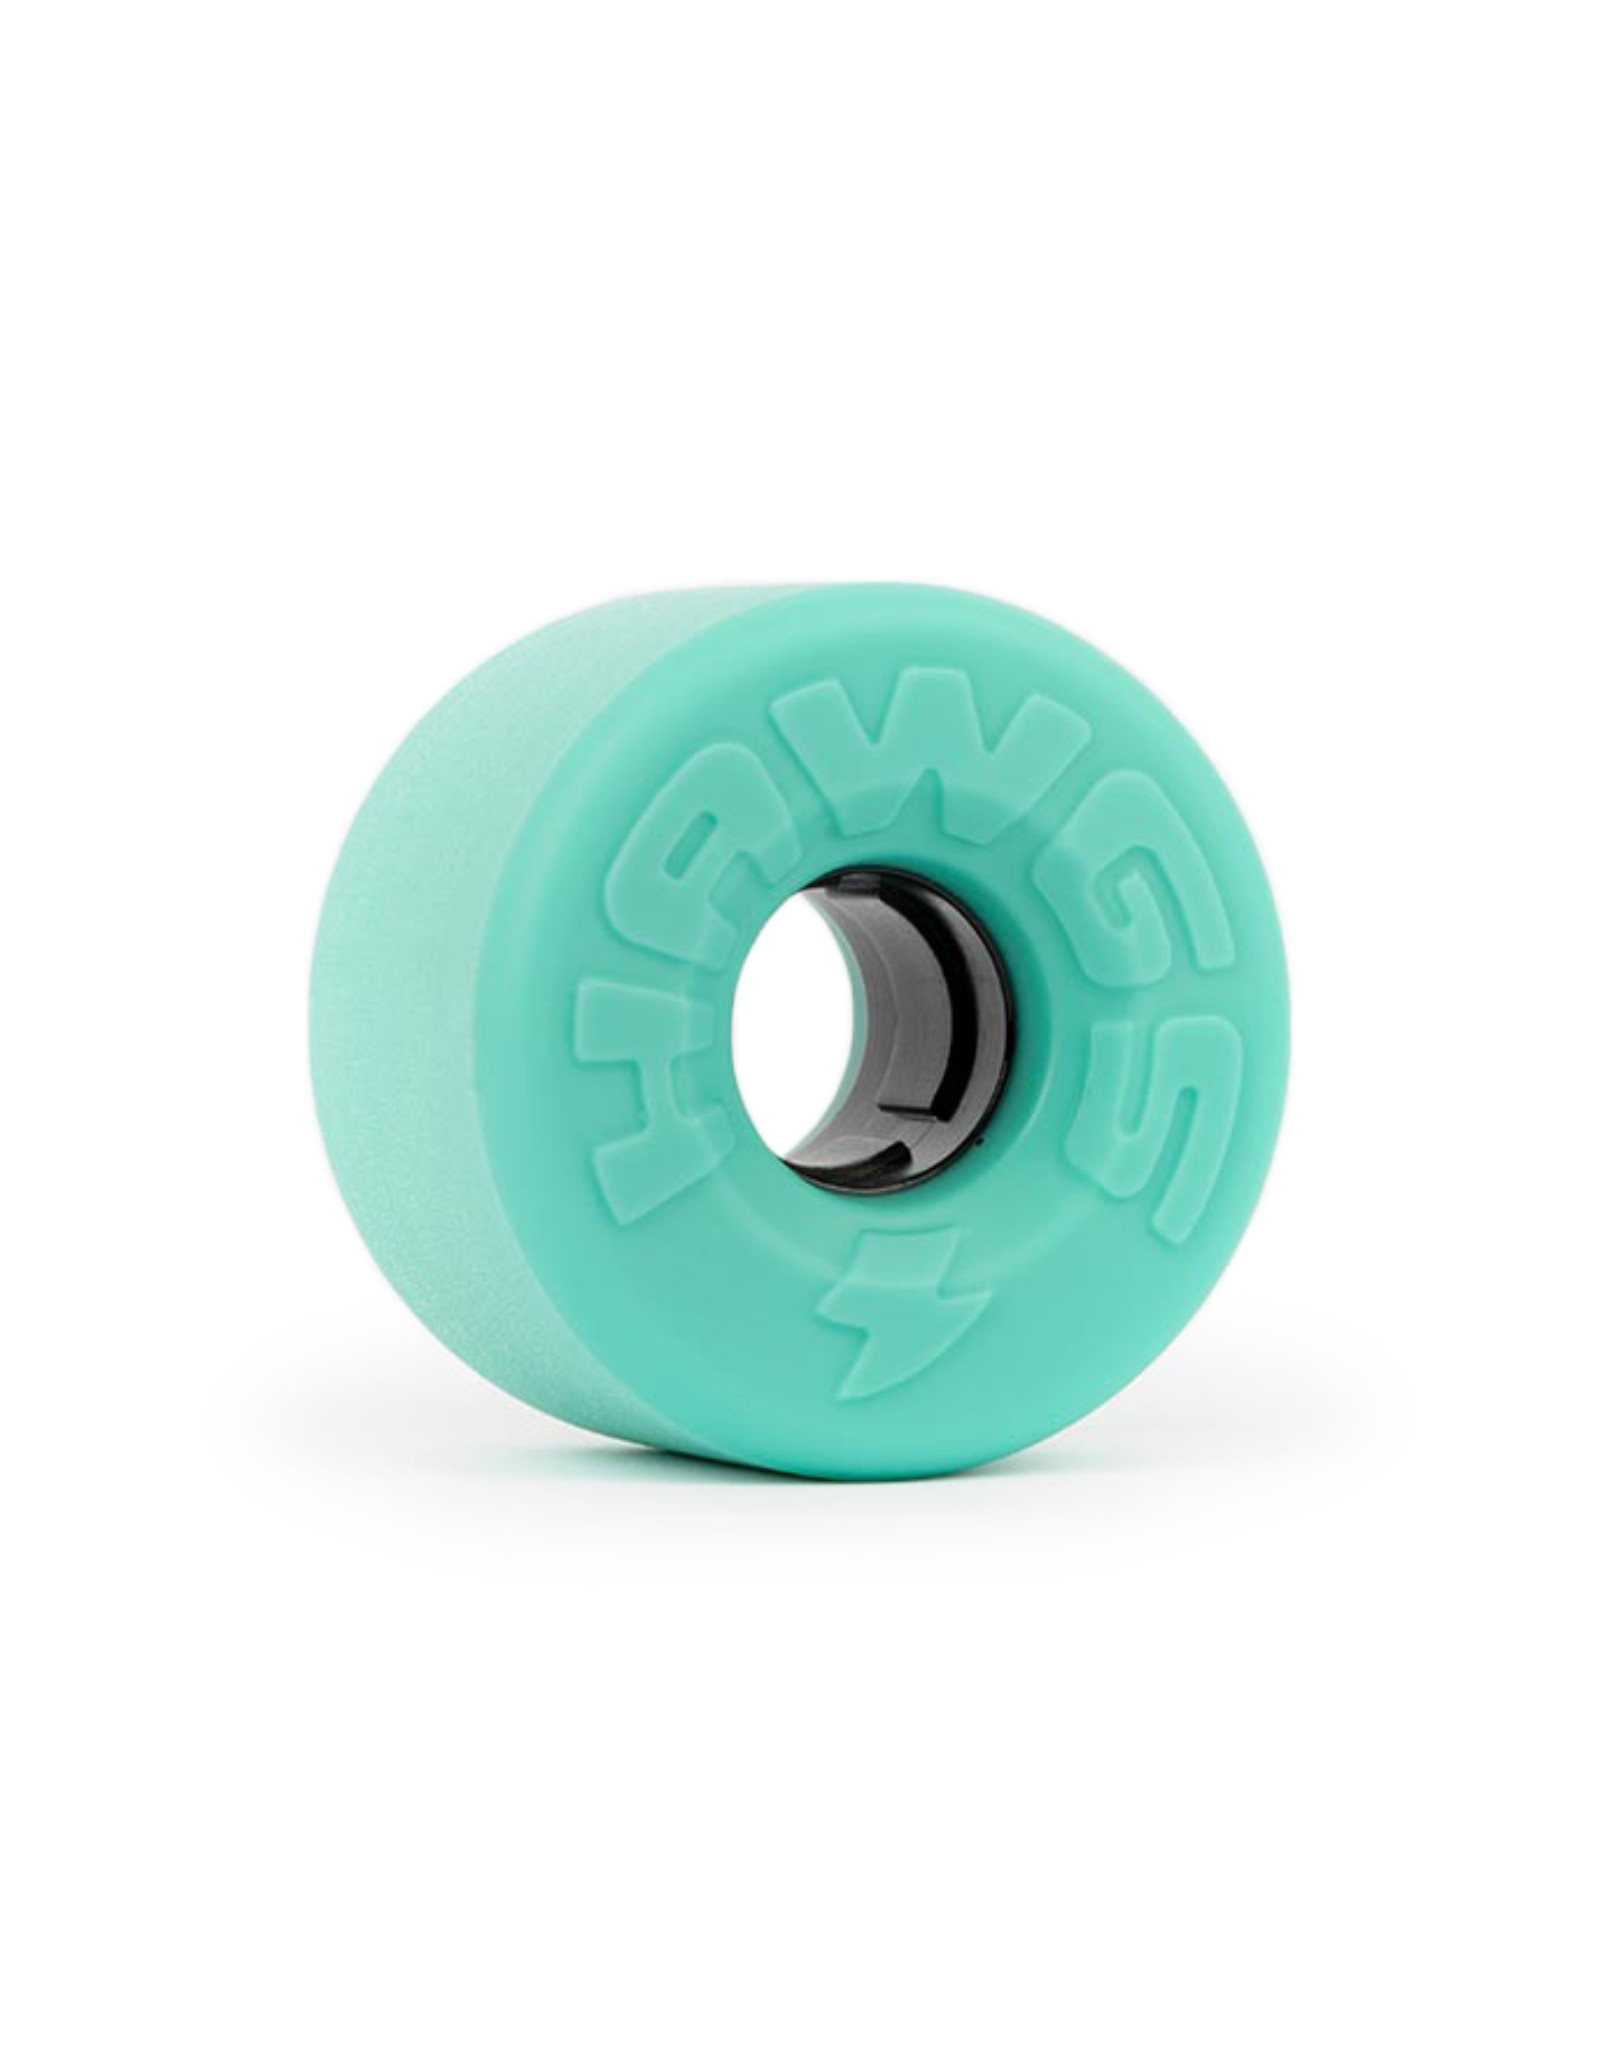 Hawgs Wheels Hawgs Easy Rollen 63 mm 78A Ocean Teal 4er-Set